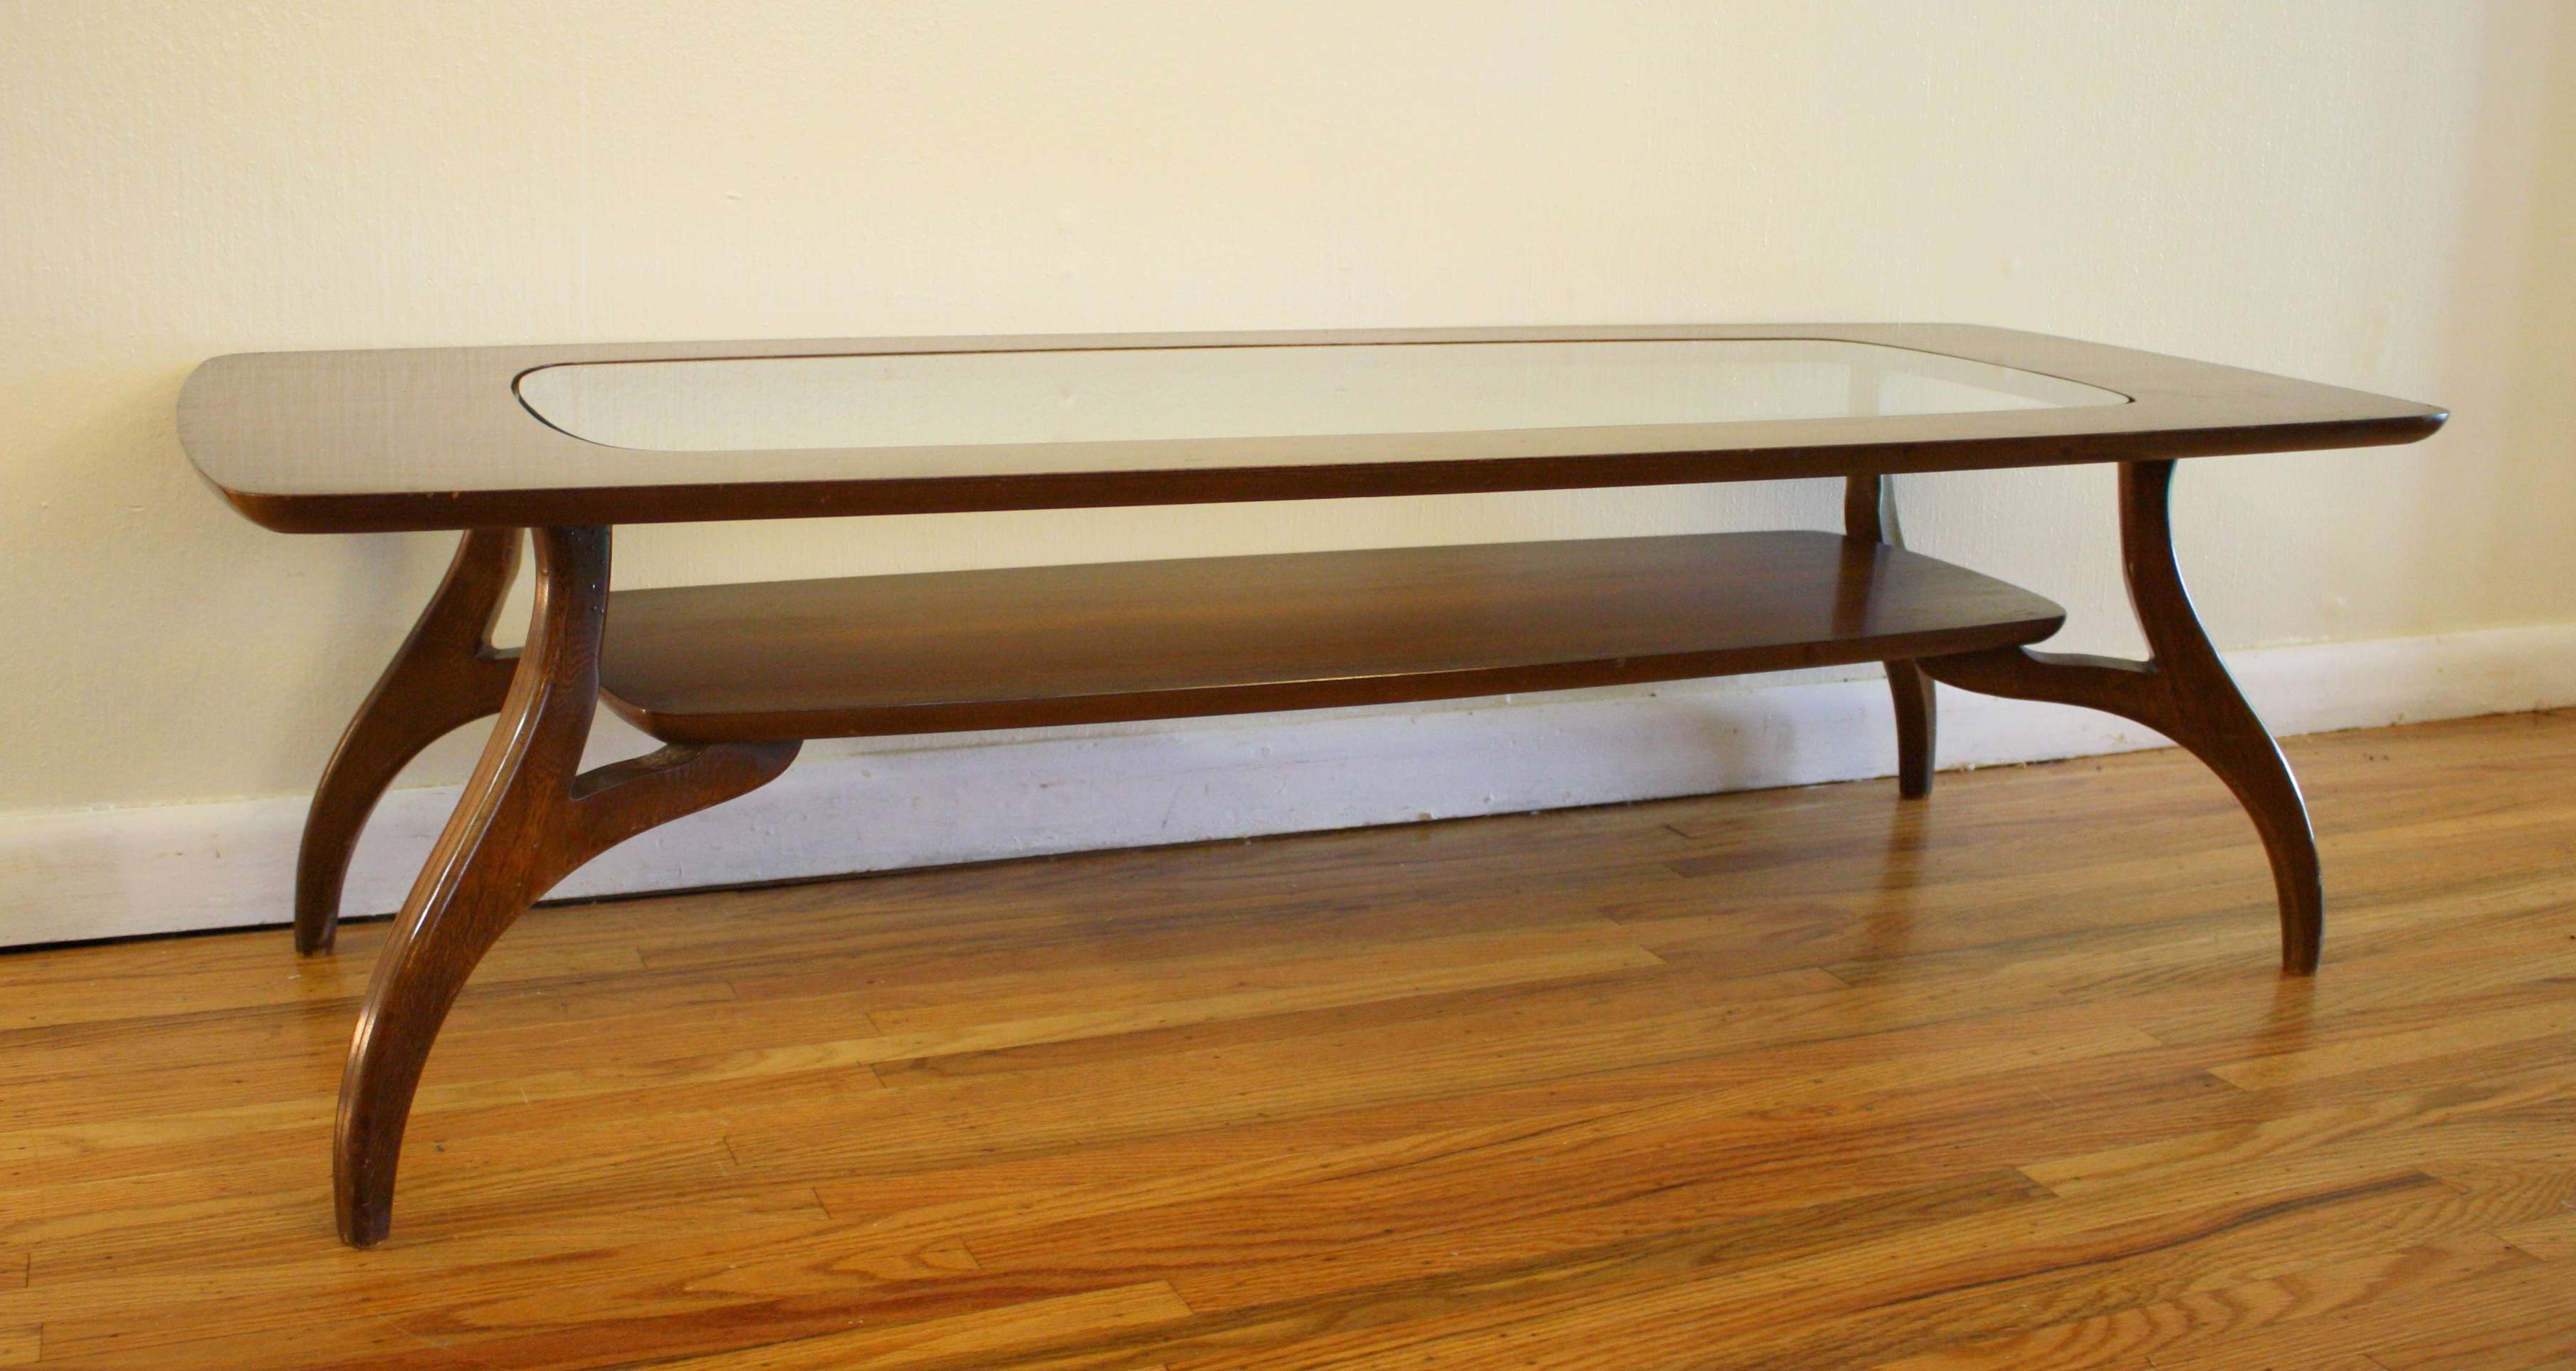 Decorations : Furniture Vintage Retro Style Coffee Table With In Well Known Retro Glass Top Coffee Tables (View 1 of 20)